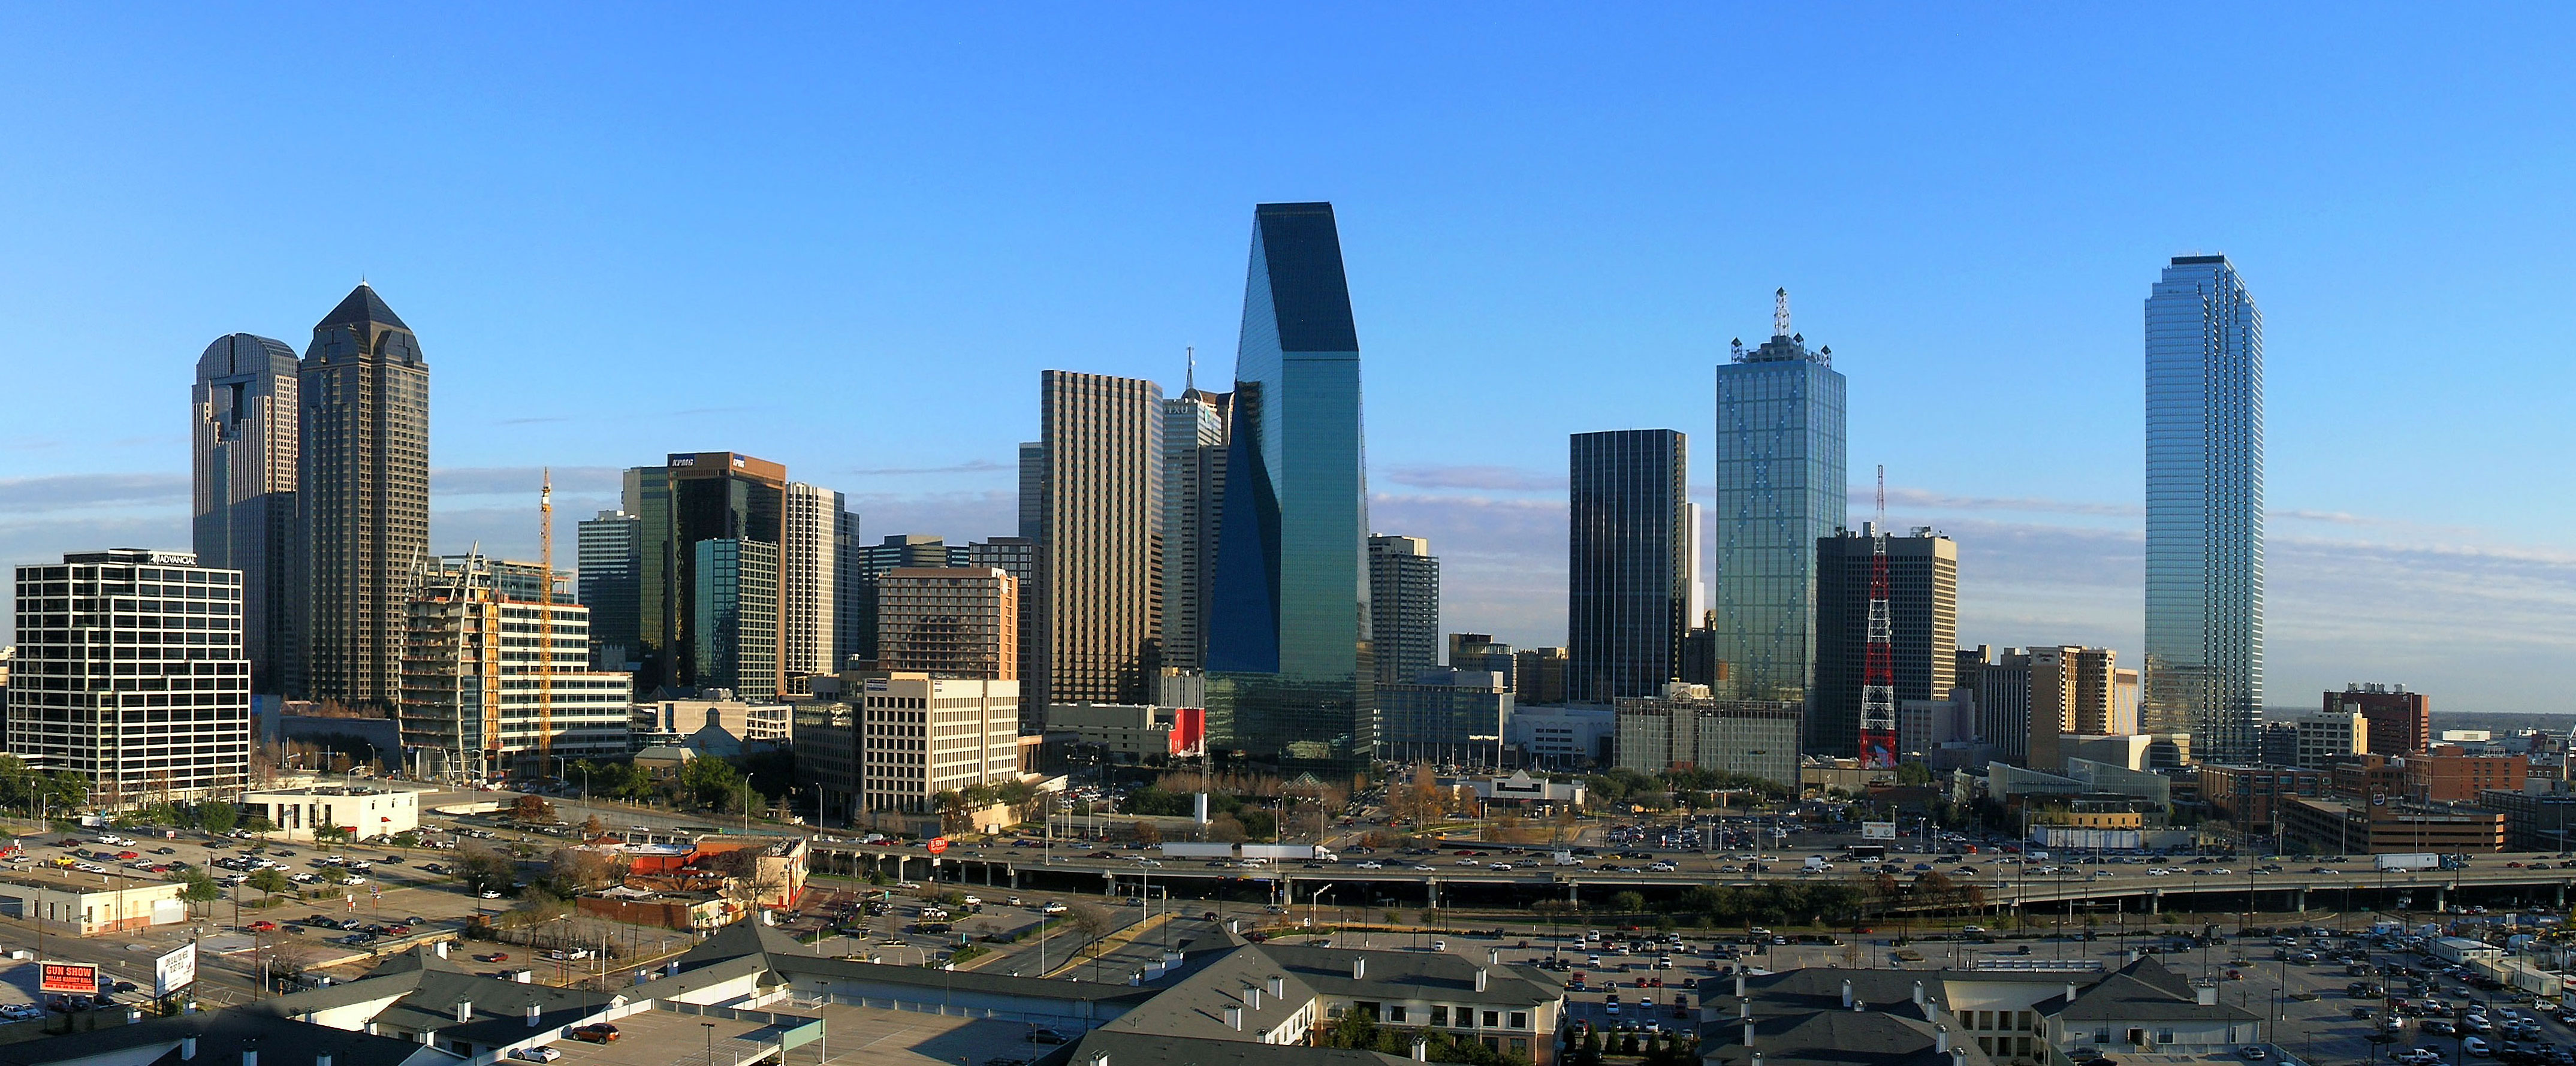 Dallas_Texas_Skyline_20062